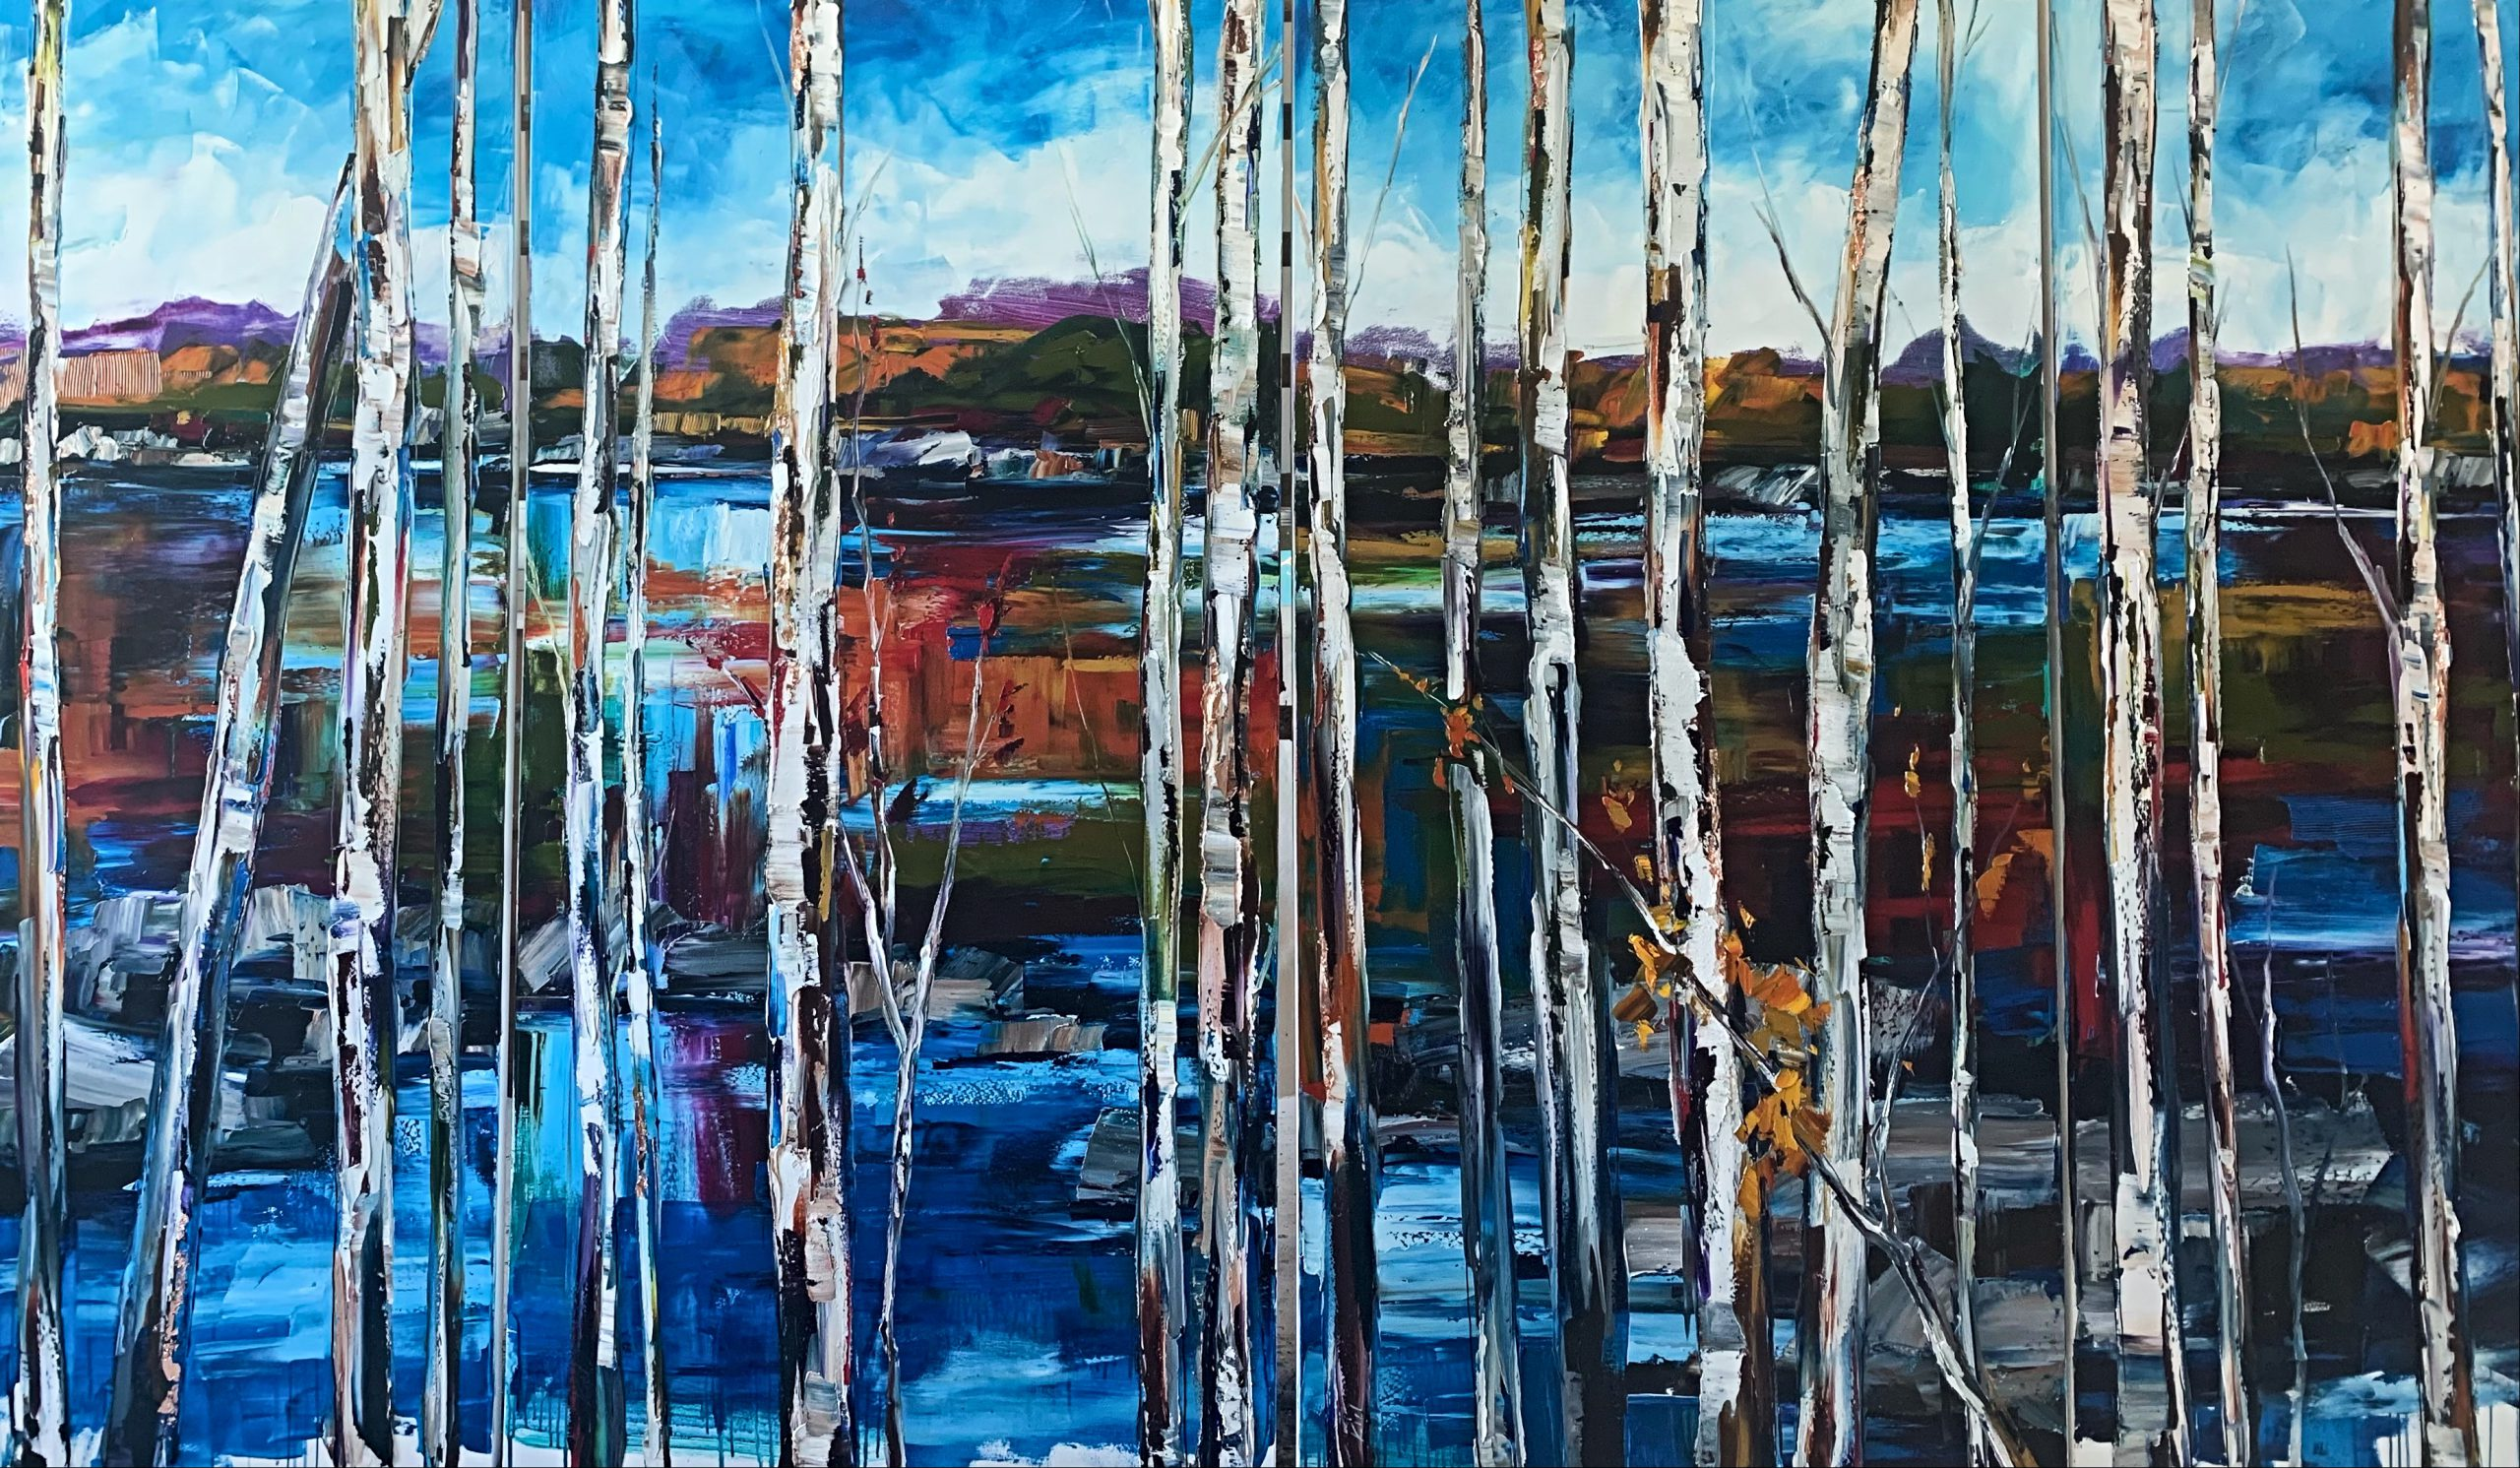 Follow My Tracks, oil landscape painting by Kimberly Kiel | Effusion Art Gallery + Cast Glass Studio, Invermere BC